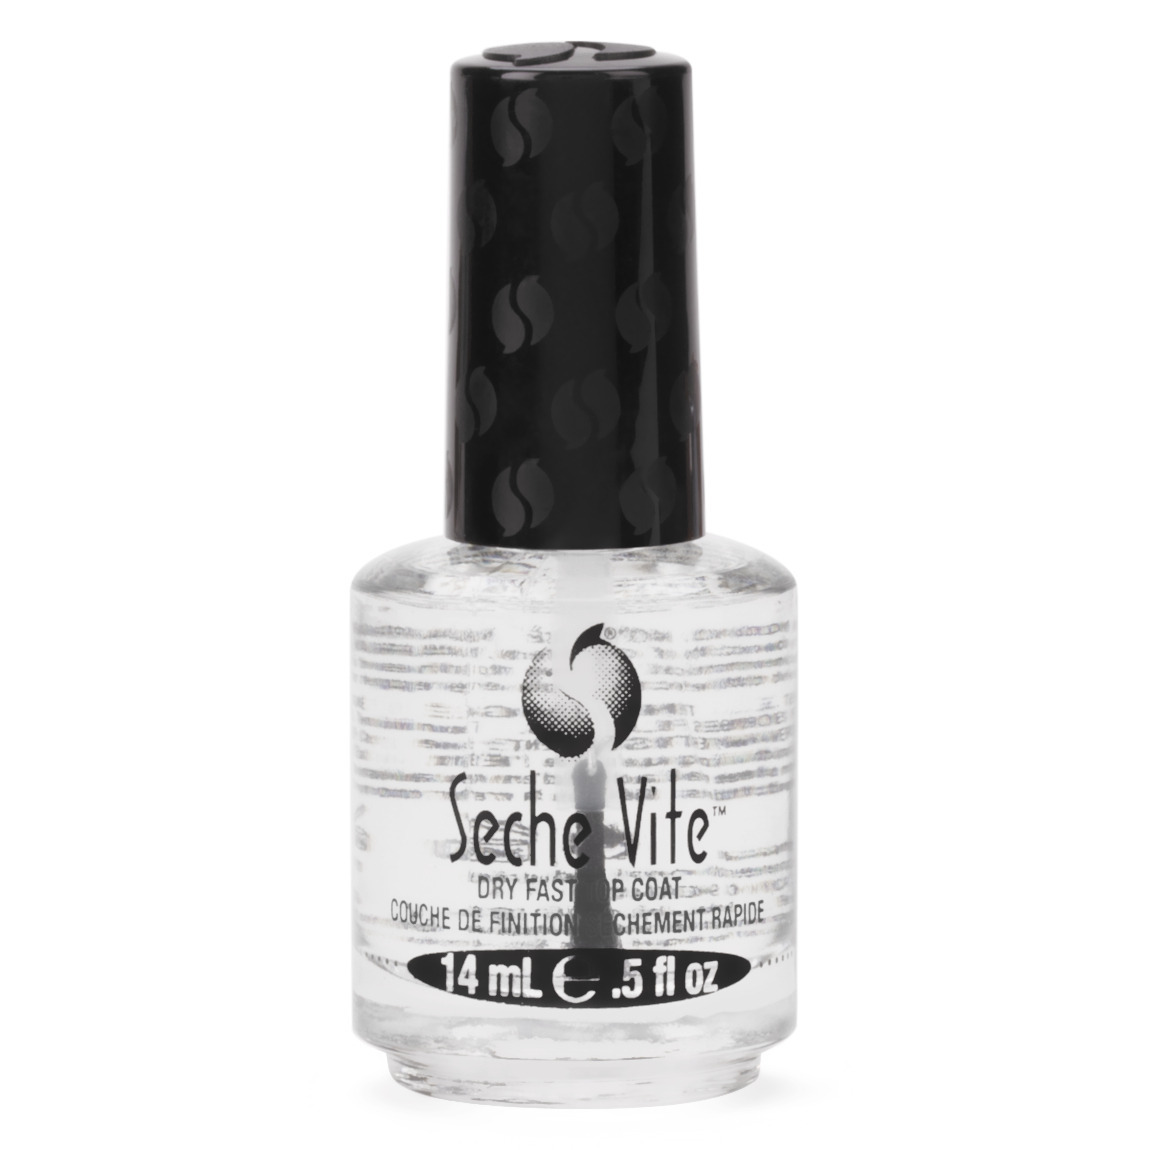 Seche Vite Dry Fast Top Coat product swatch.